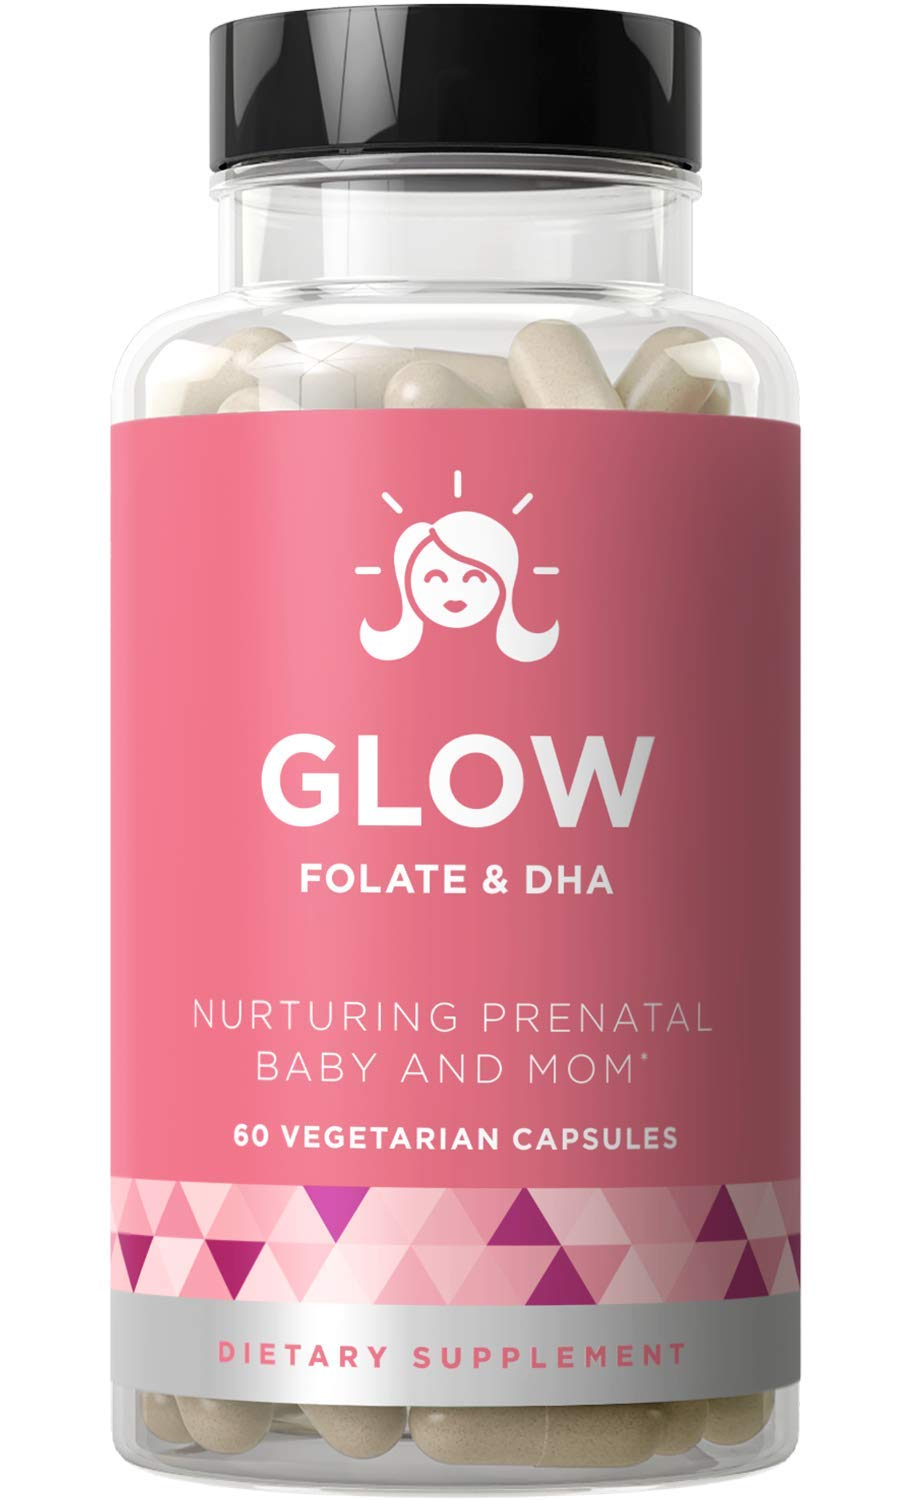 Glow Prenatal Vitamins + Folate & DHA – Nurturing Pregnancy Multivitamin for Healthy Baby and Mom – Folic Acid, Ginger, Zinc, Iron – 60 Mini Vegetarian Soft Capsules